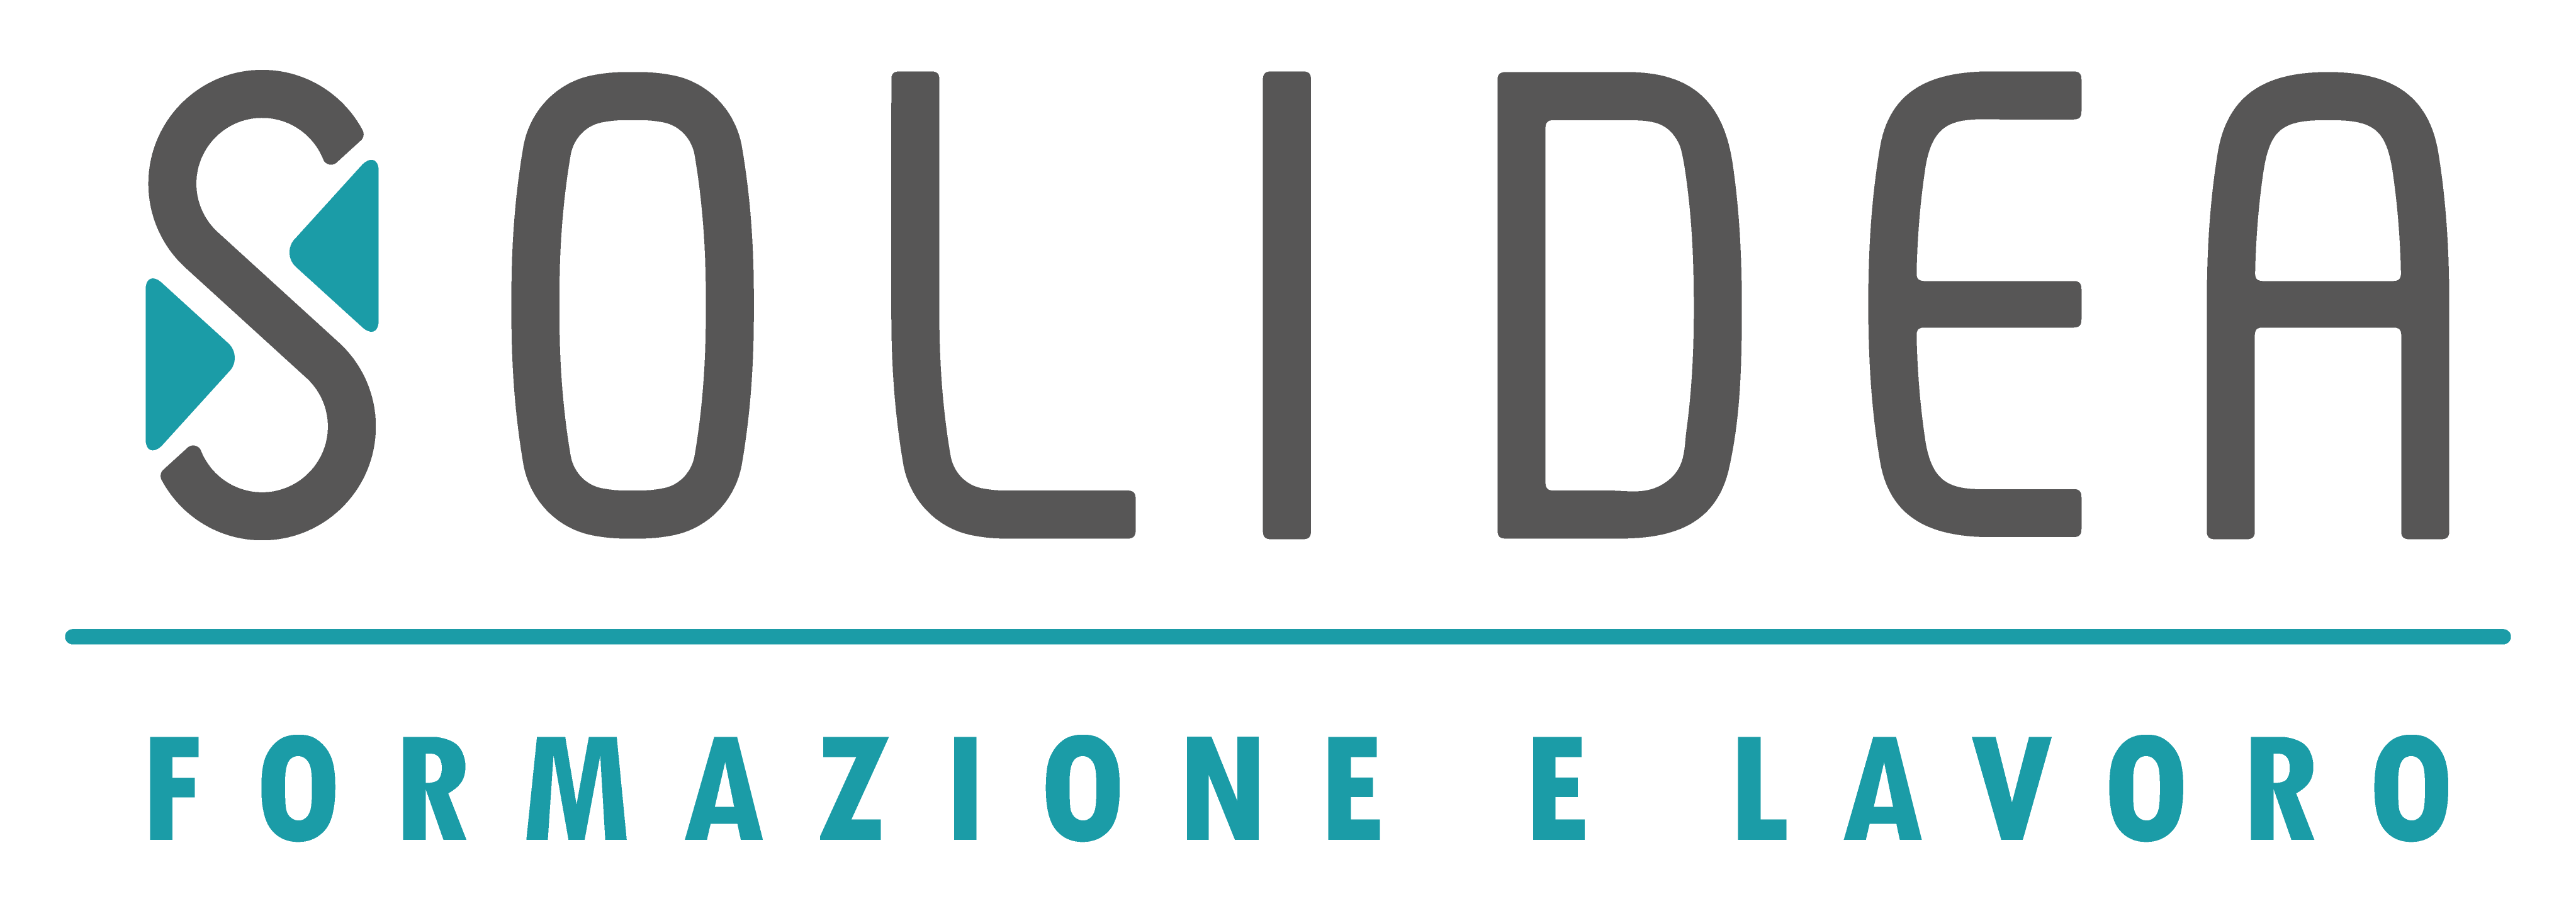 LOGO VETTORIALE SOLIDEA PNG-01